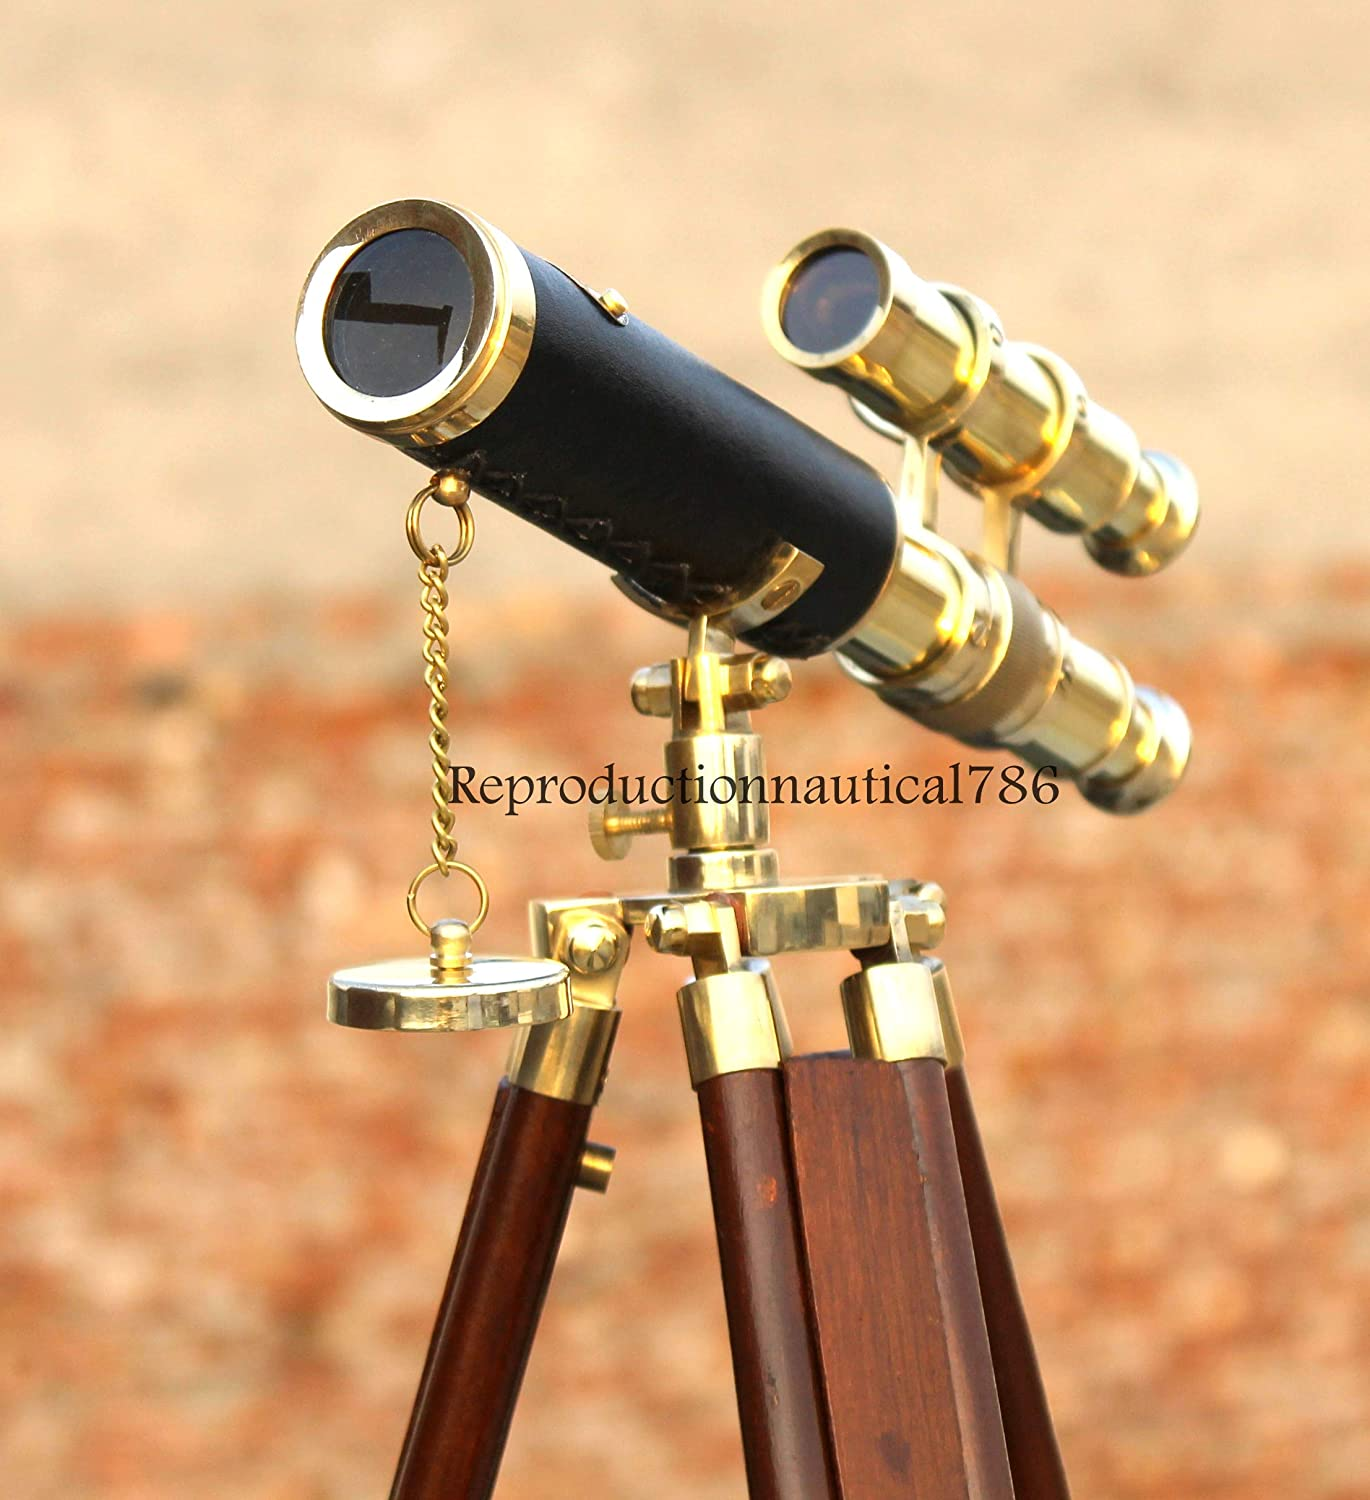 Handmade Solid Brass Black Leather Wrapped Double Barrel Spyglass Telescope with Wooden Adjustable Tripod Stand Marine Desktop Scope Gift Home /& Office Decorative